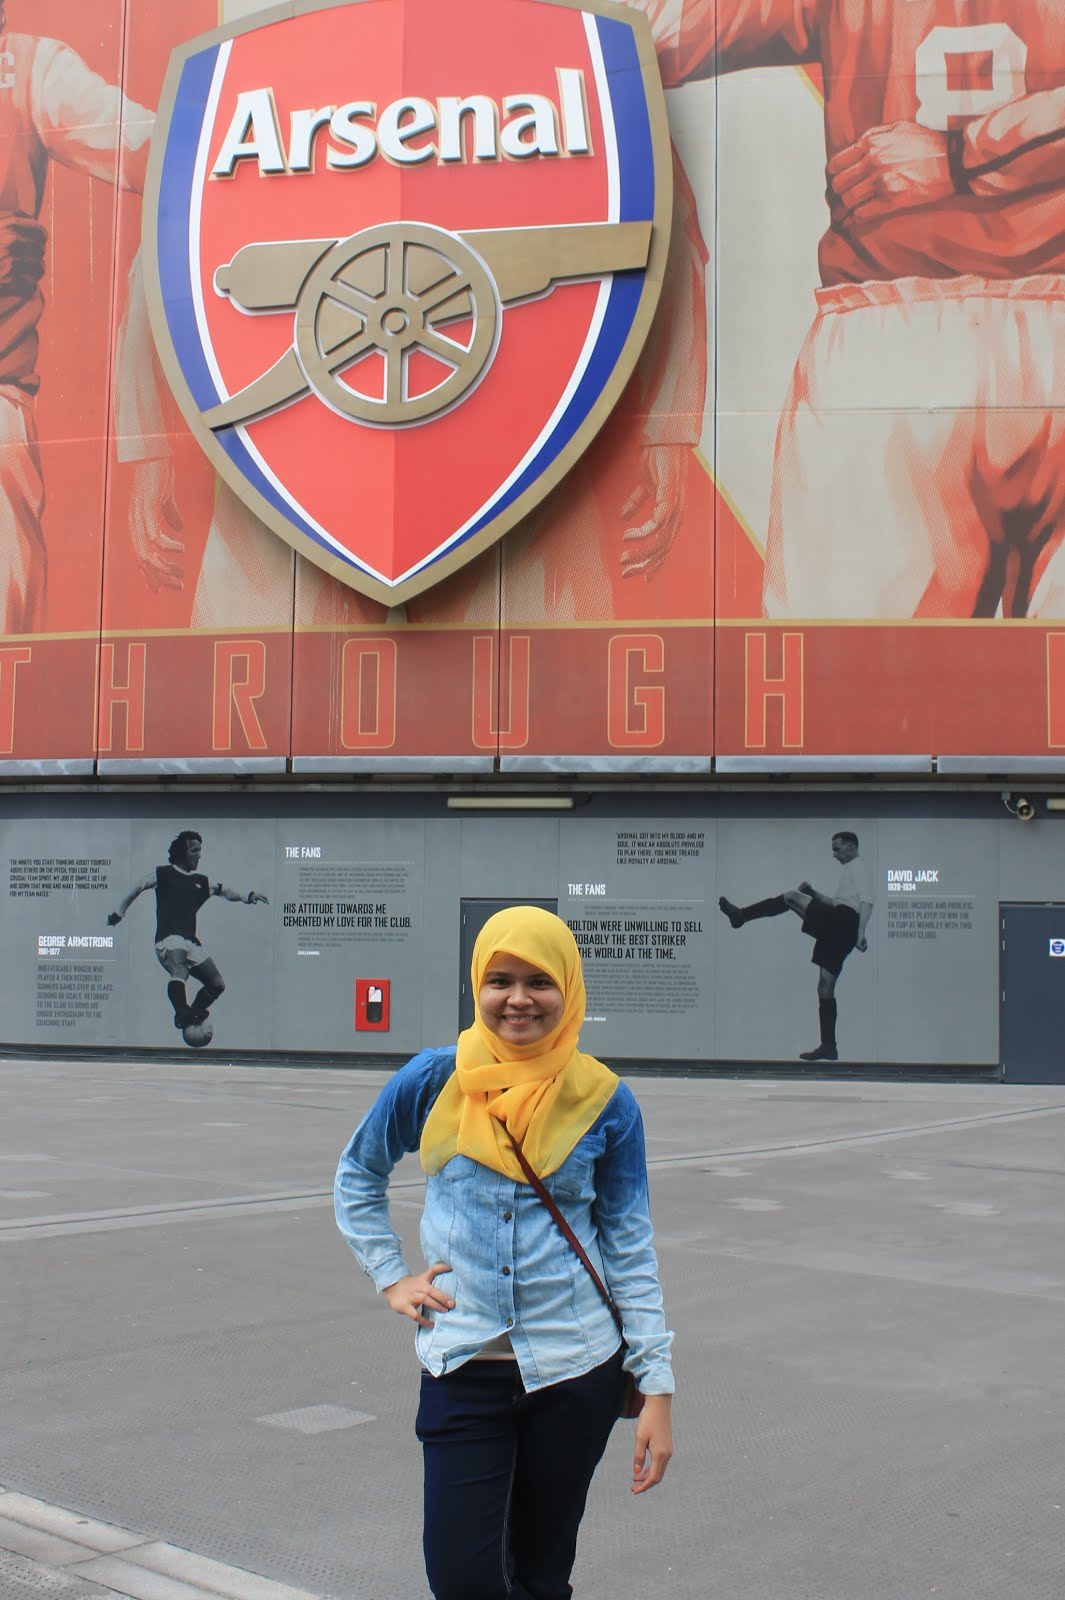 ARSENAL, UNITED KINGDOM